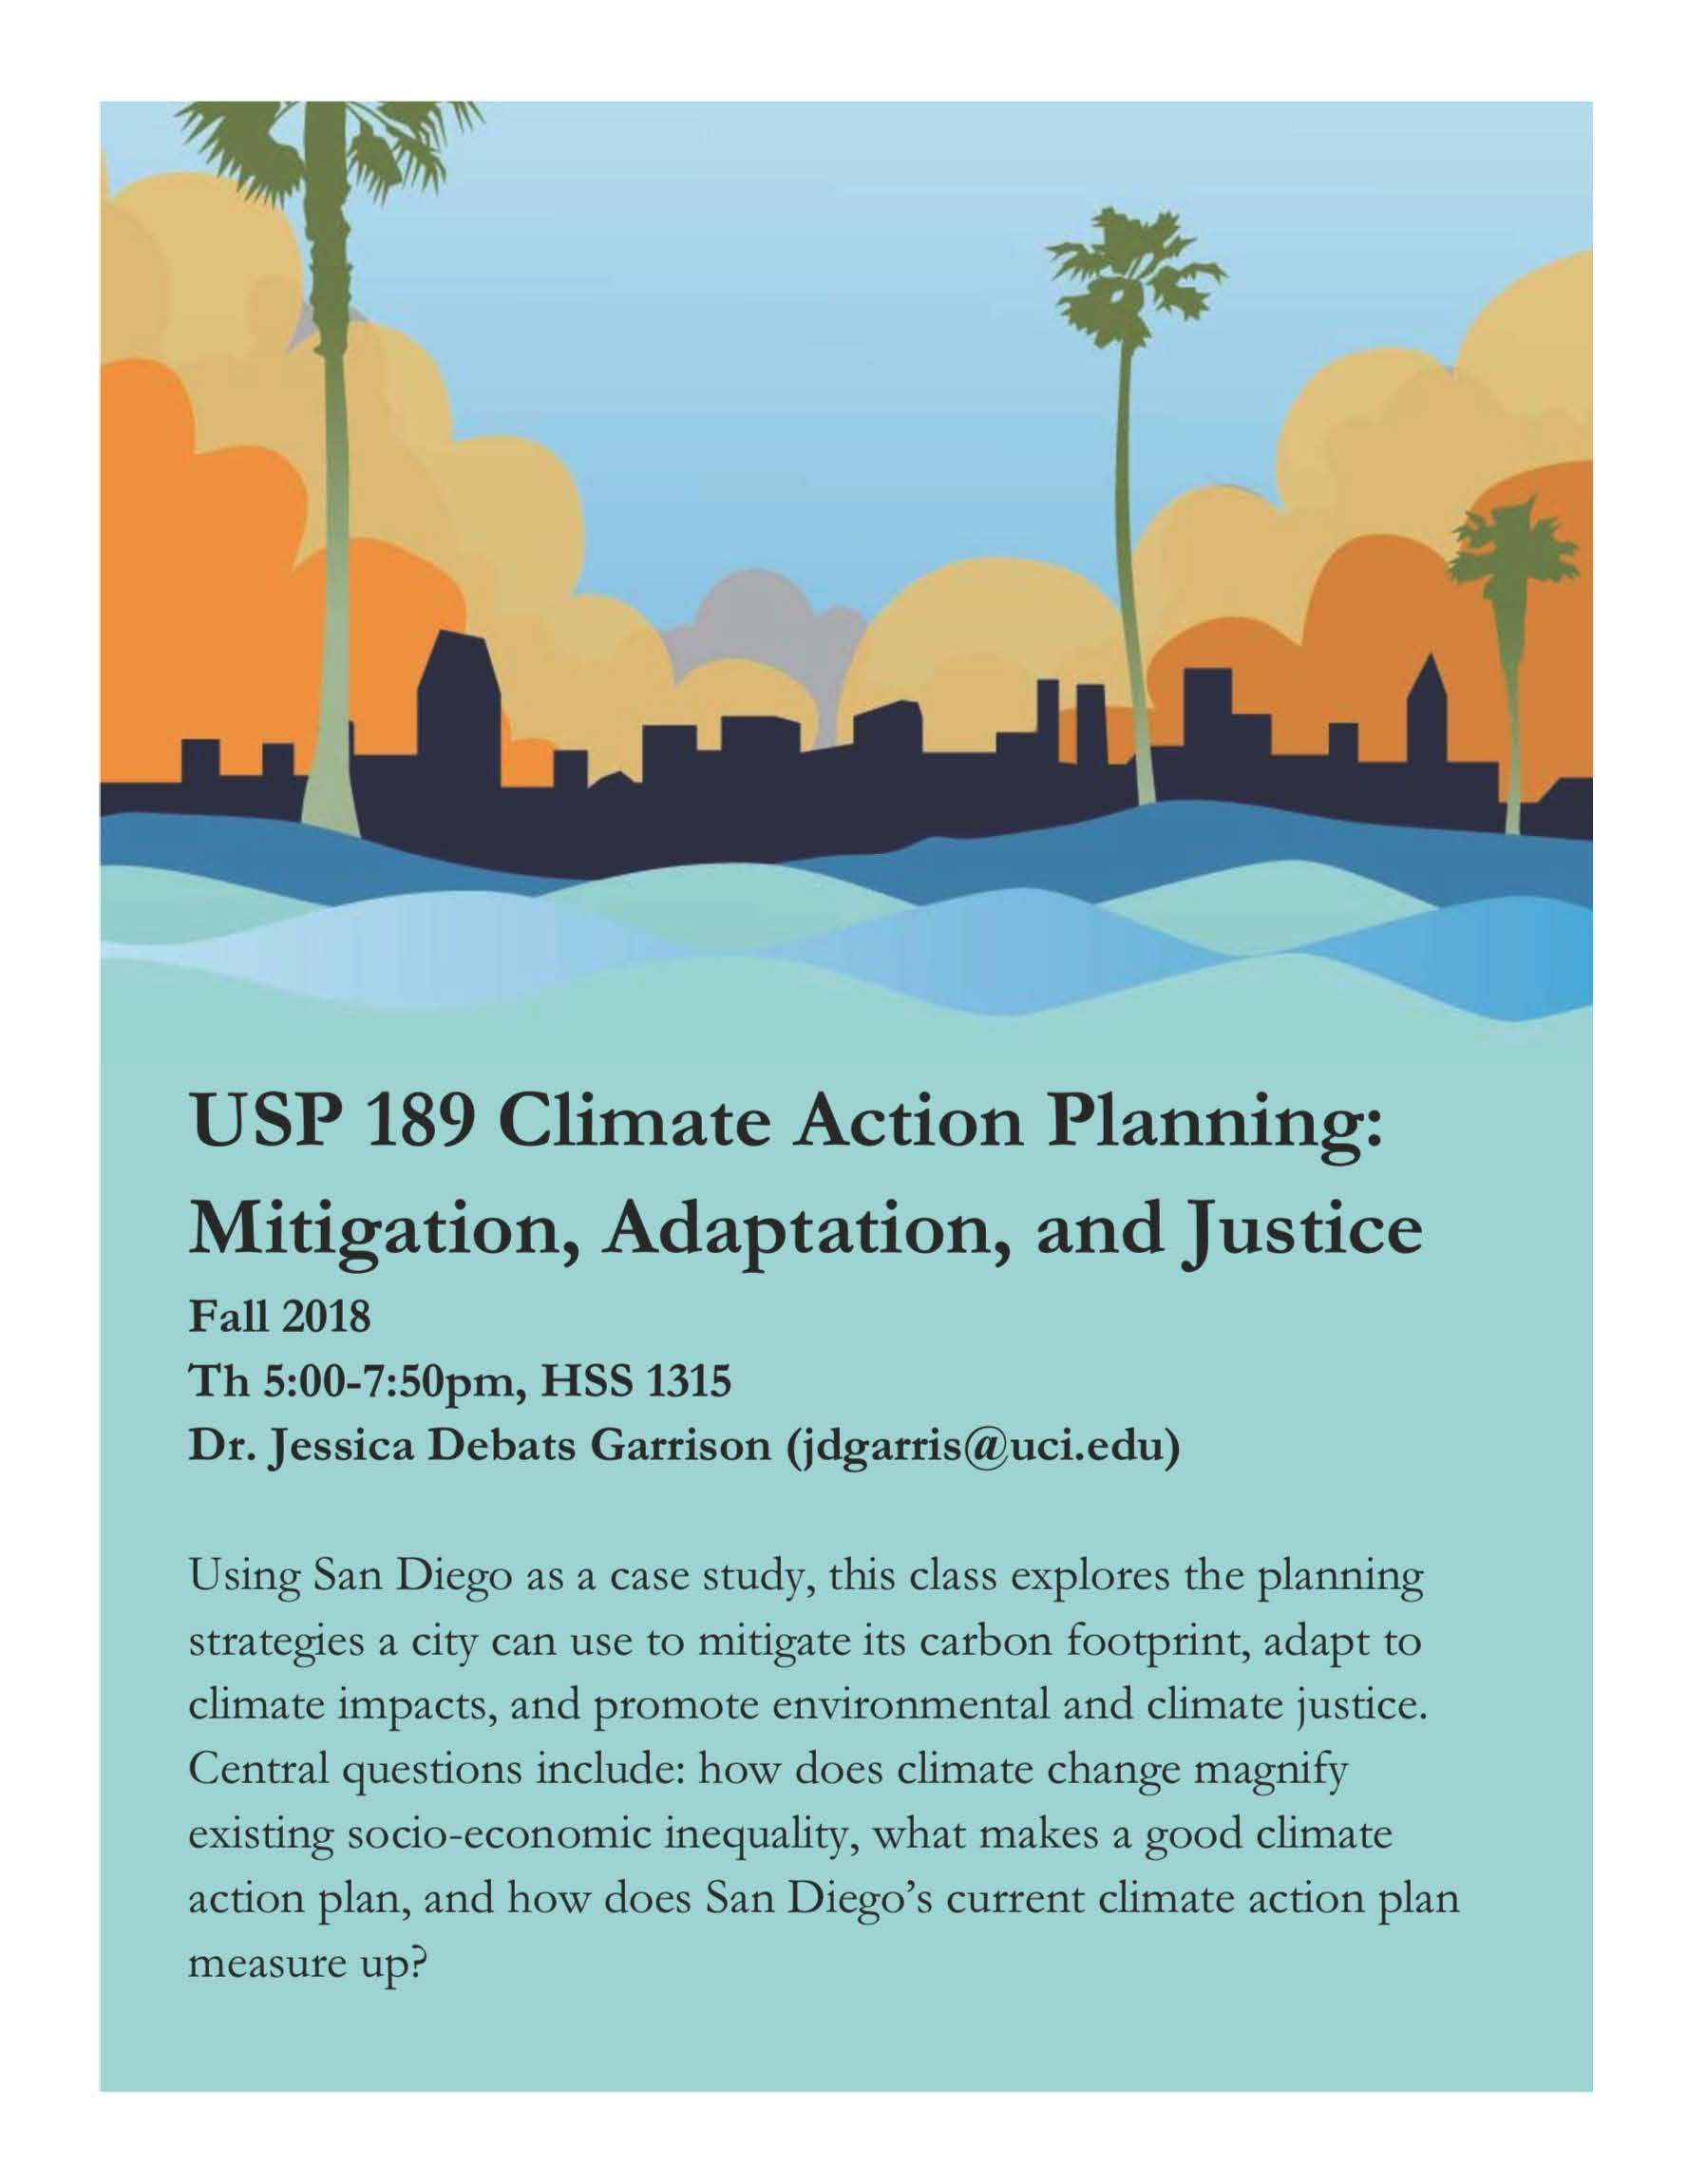 Using San Diego as a case study, this class explores the planning strategies a city can use to mitigate its carbon footprint, adapt to climate impacts, and promote environmental and climate justice. Central questions include: how does climate change magnify existing socio-economic inequality, what makes a good climate action plan, and how does San Diego's current climate action plan measure up?